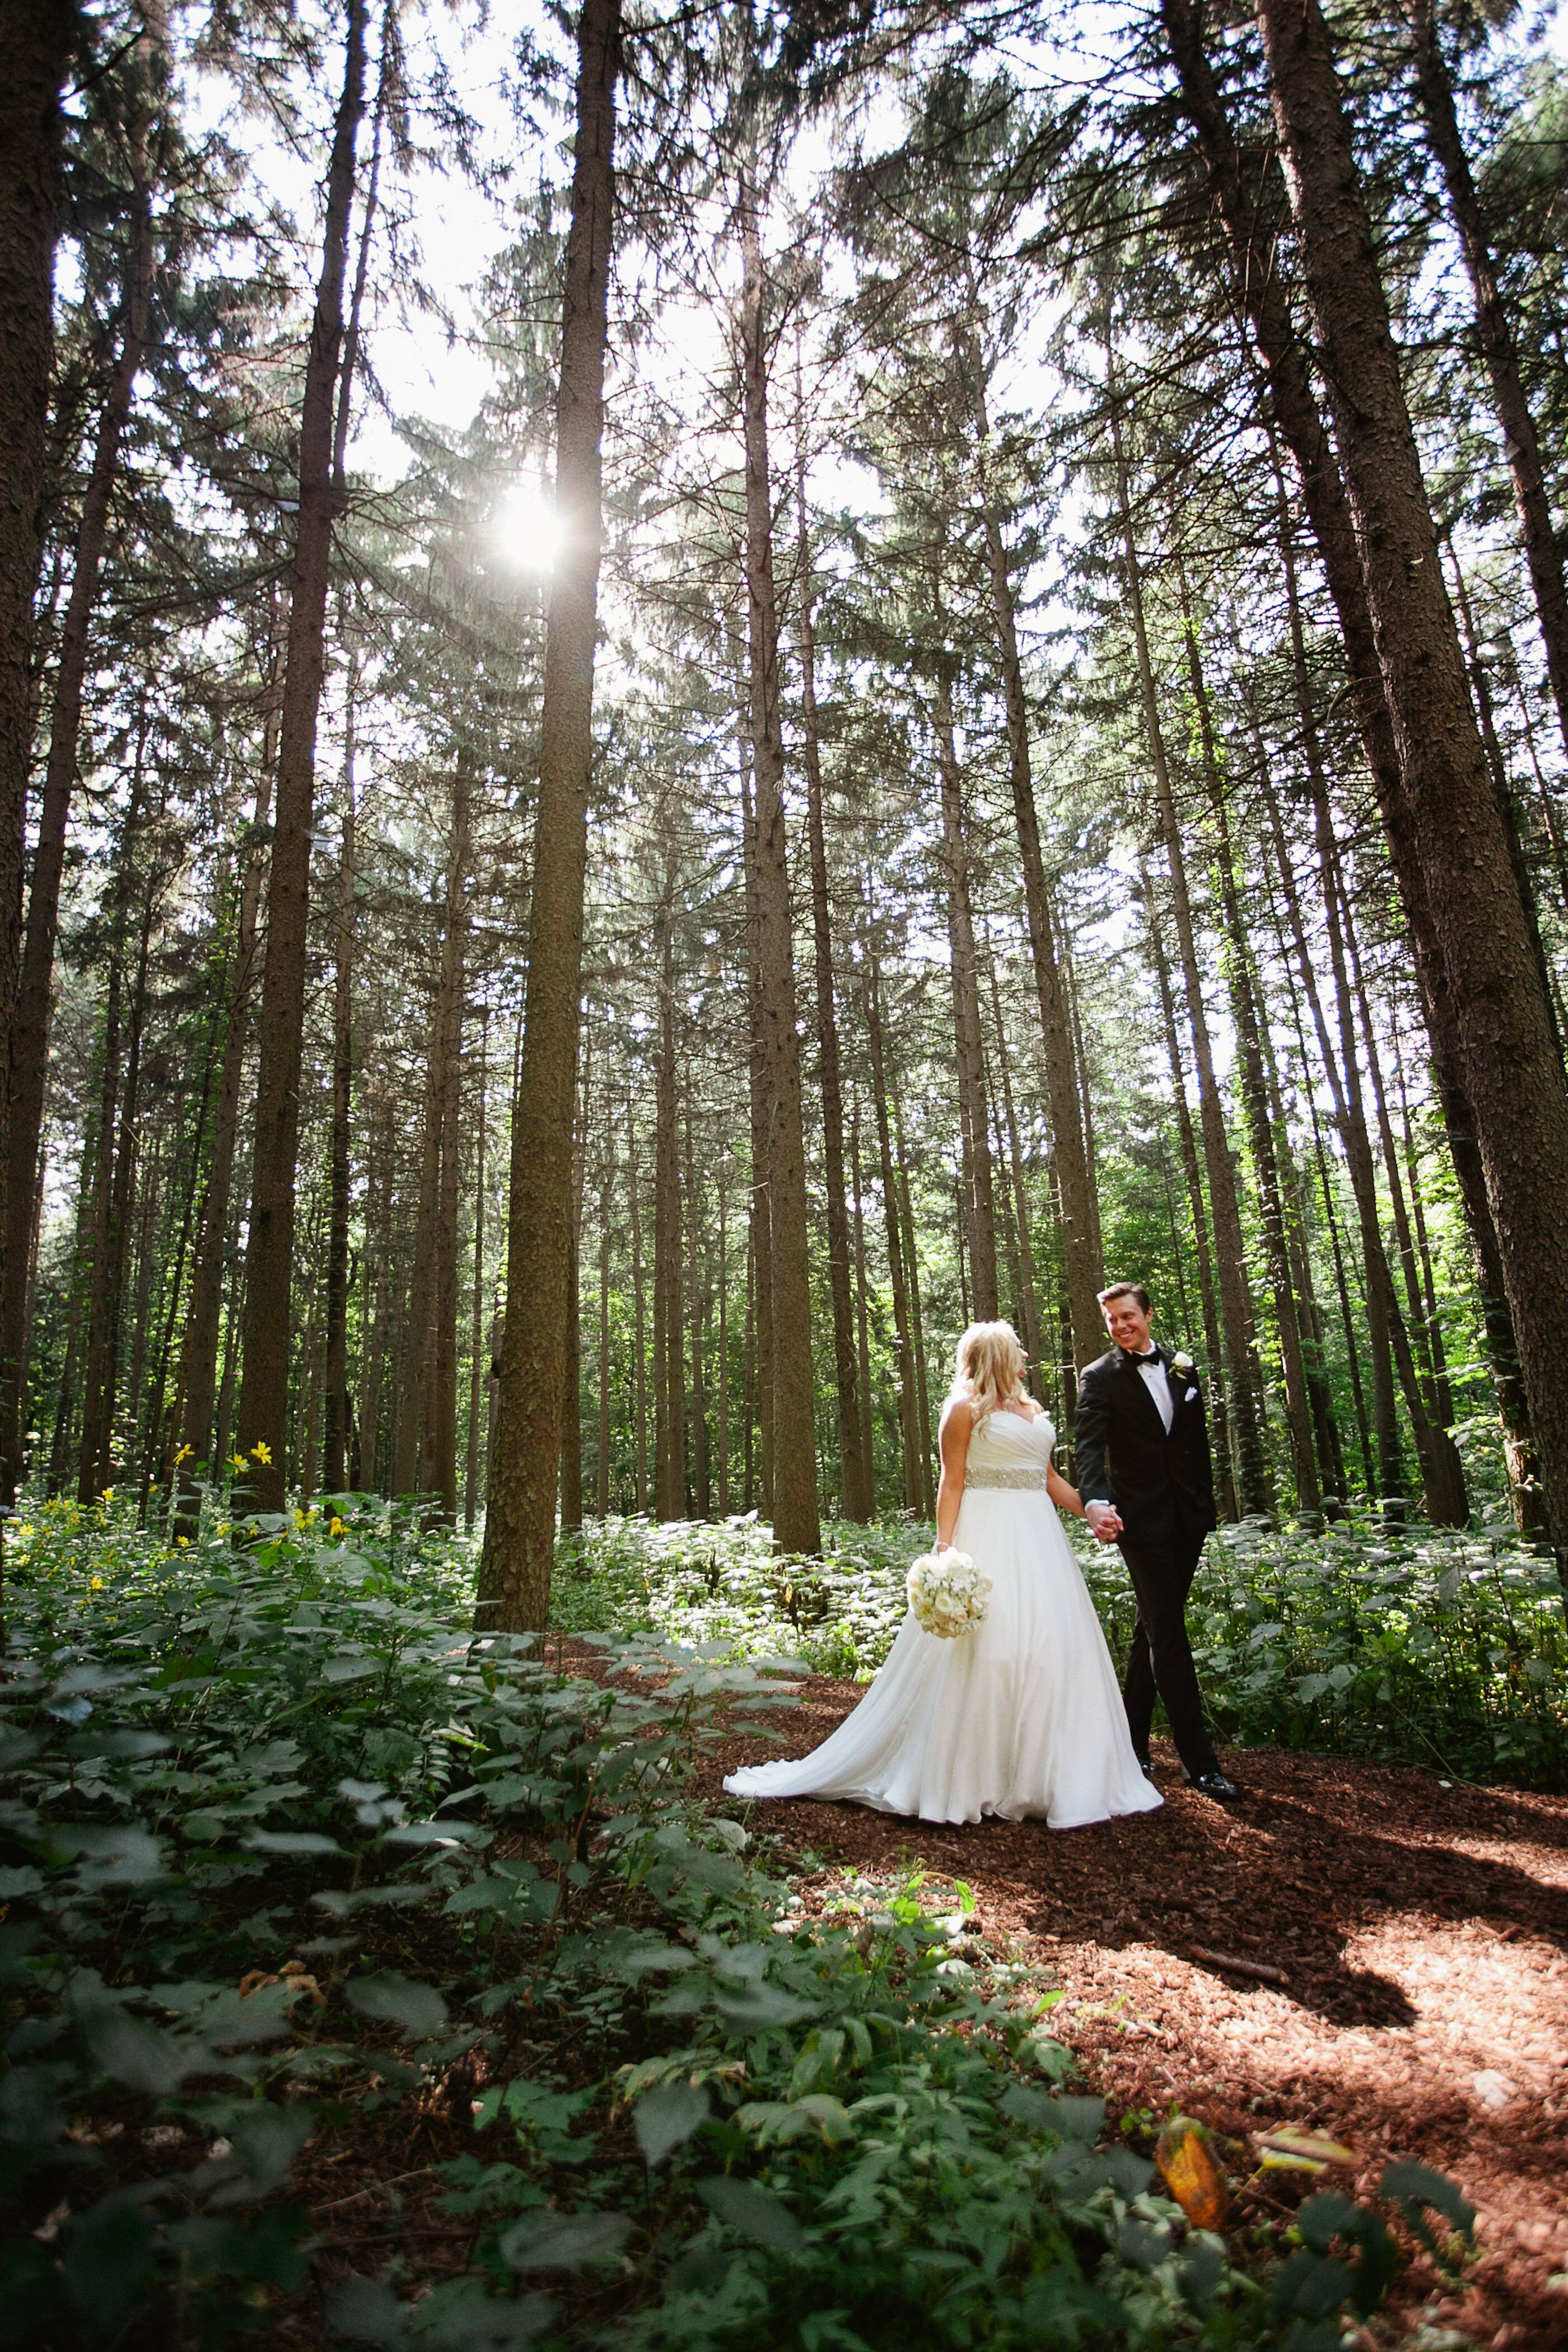 A Morton Arboretum Wedding In Lisle Illinois